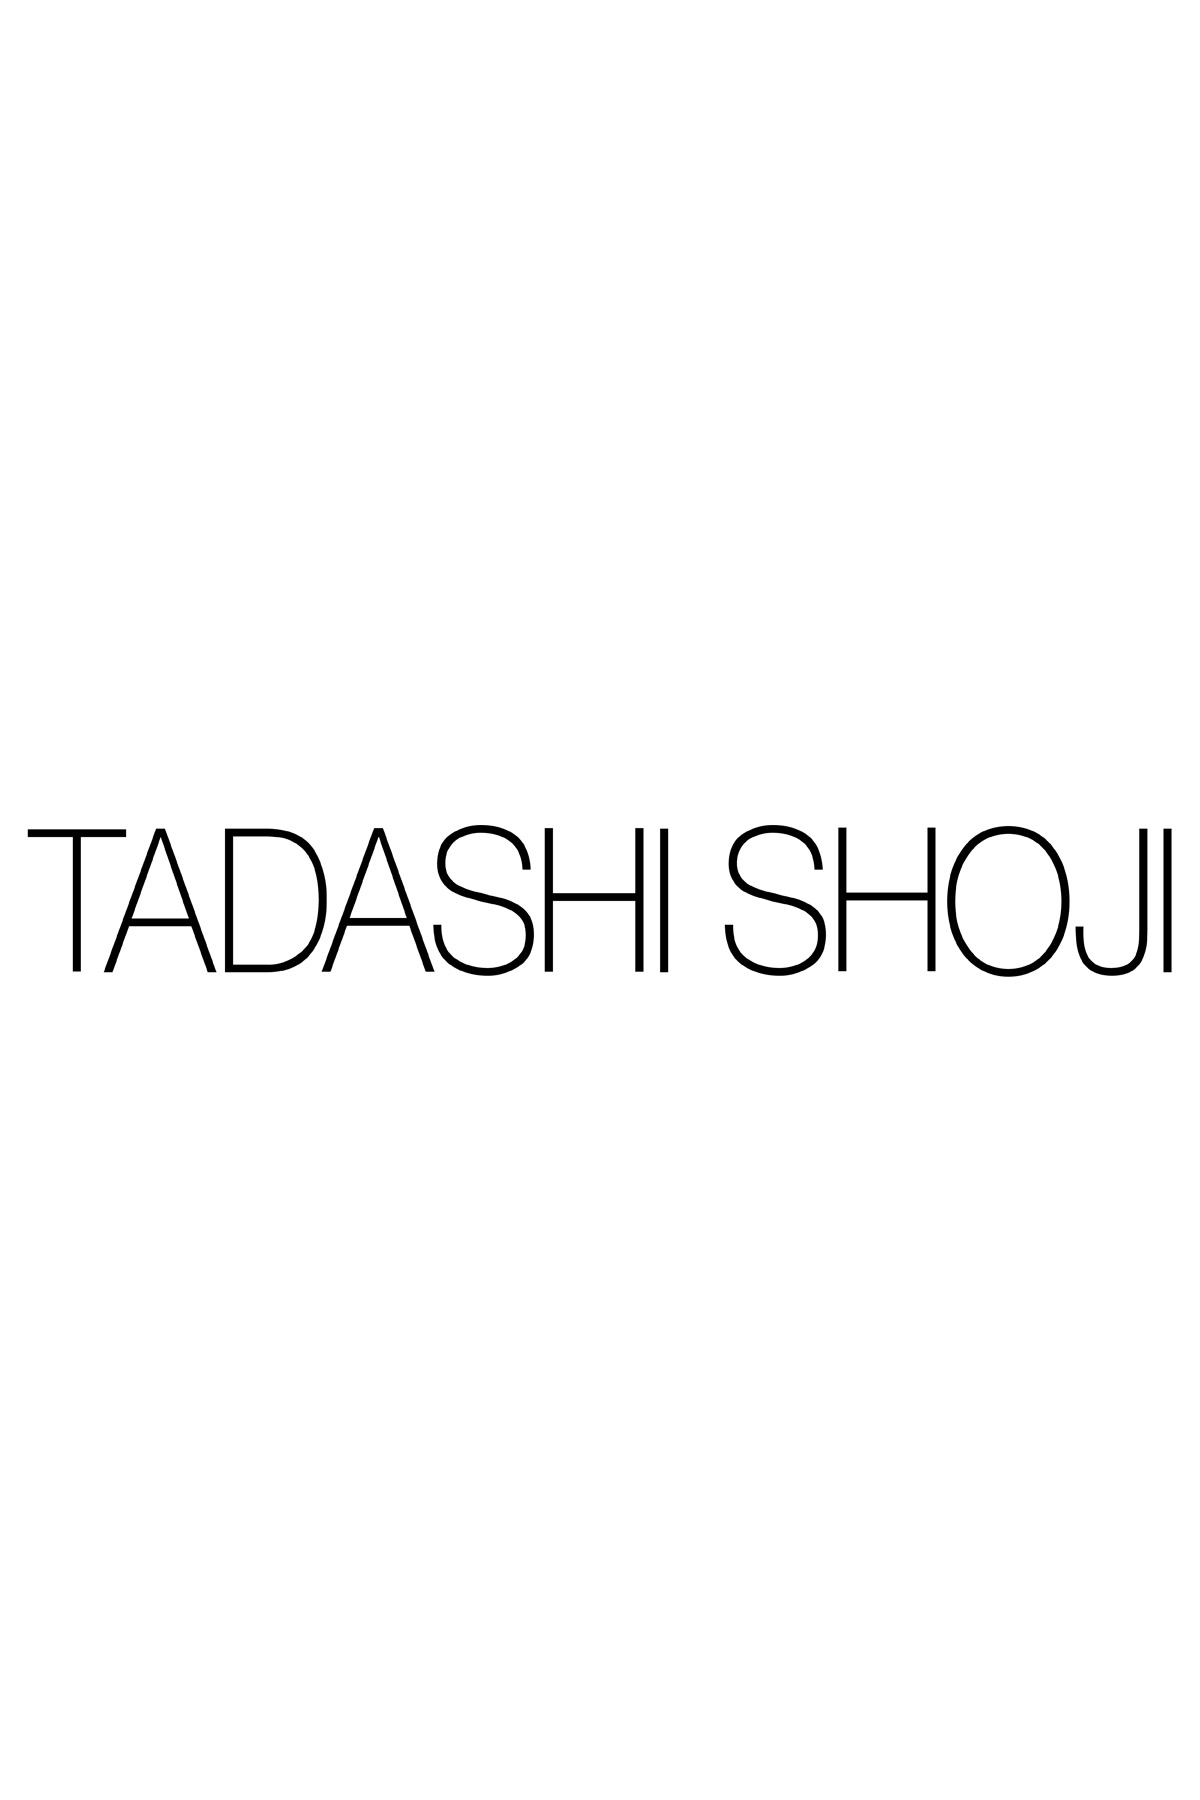 Tadashi Shoji - Corded Embroidery on Tulle Clutch